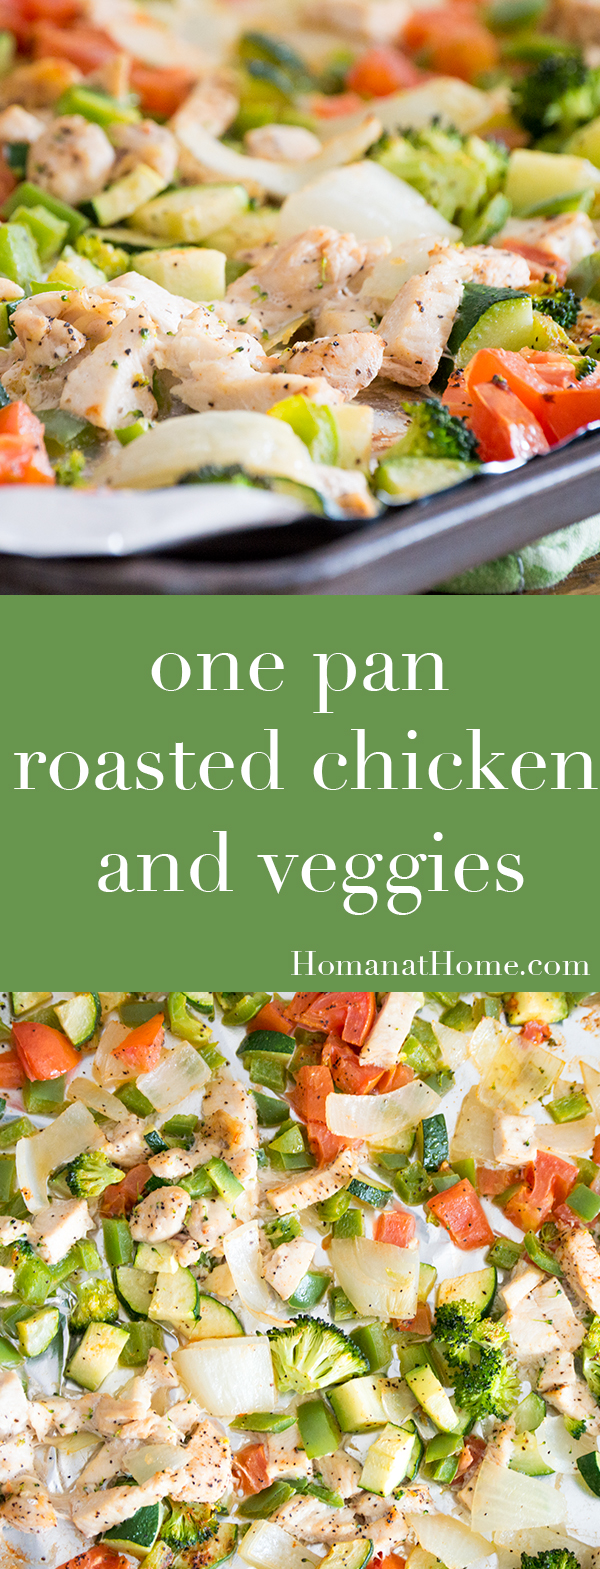 Oven Roasted Chicken and Veggies | Homan at Home